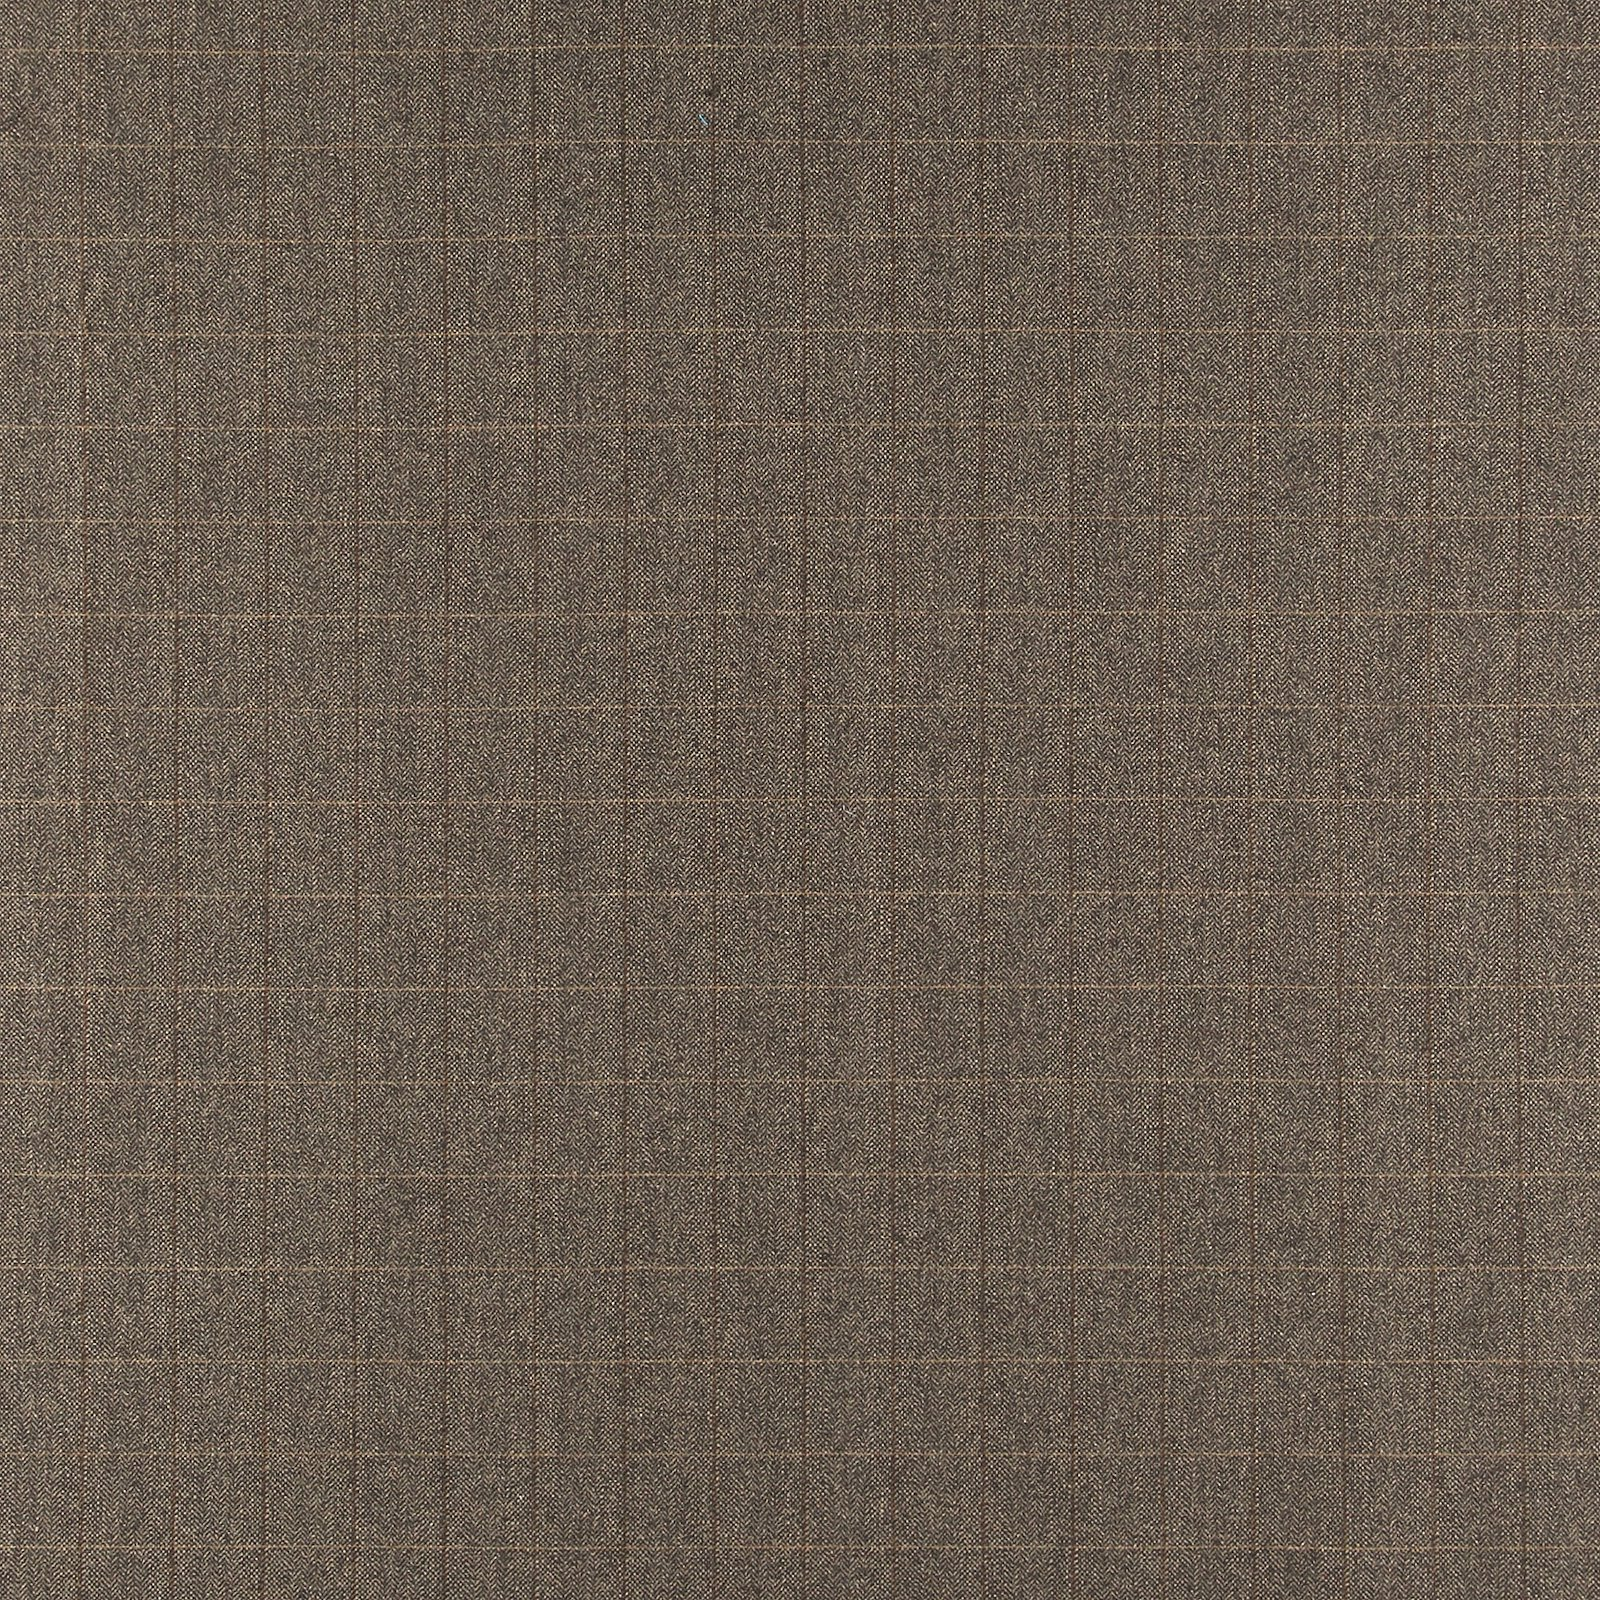 Woven wool with brown petite YD check 300221_pack_sp